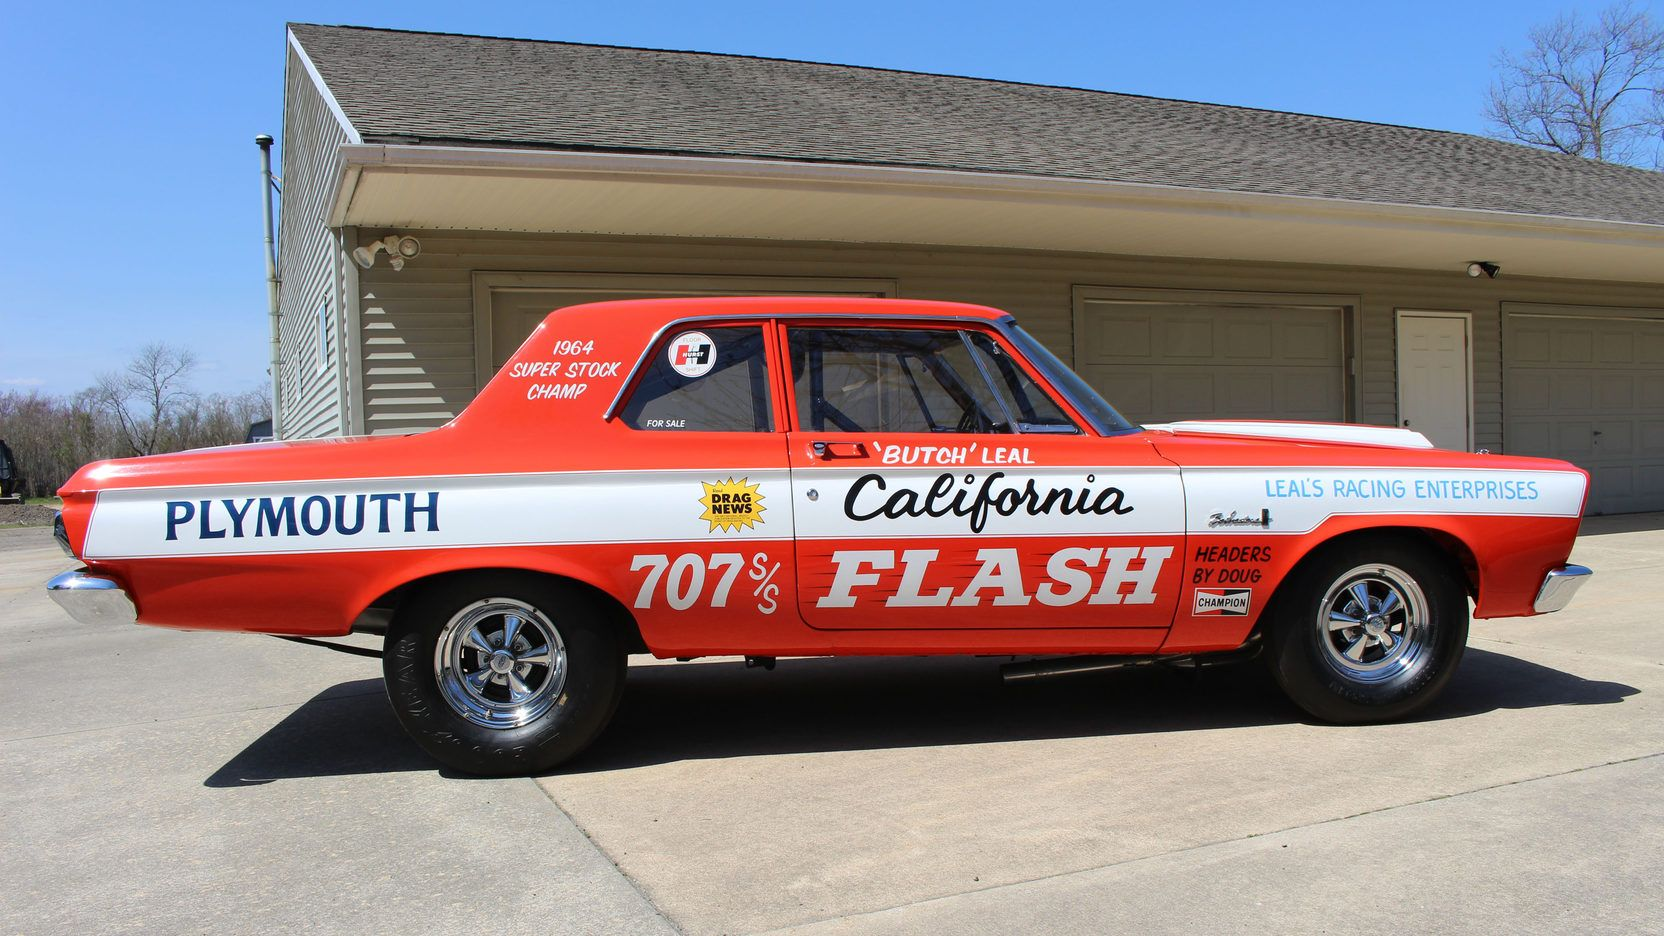 1965 Plymouth Belvedere I Super Stock presented as Lot S91 at ...